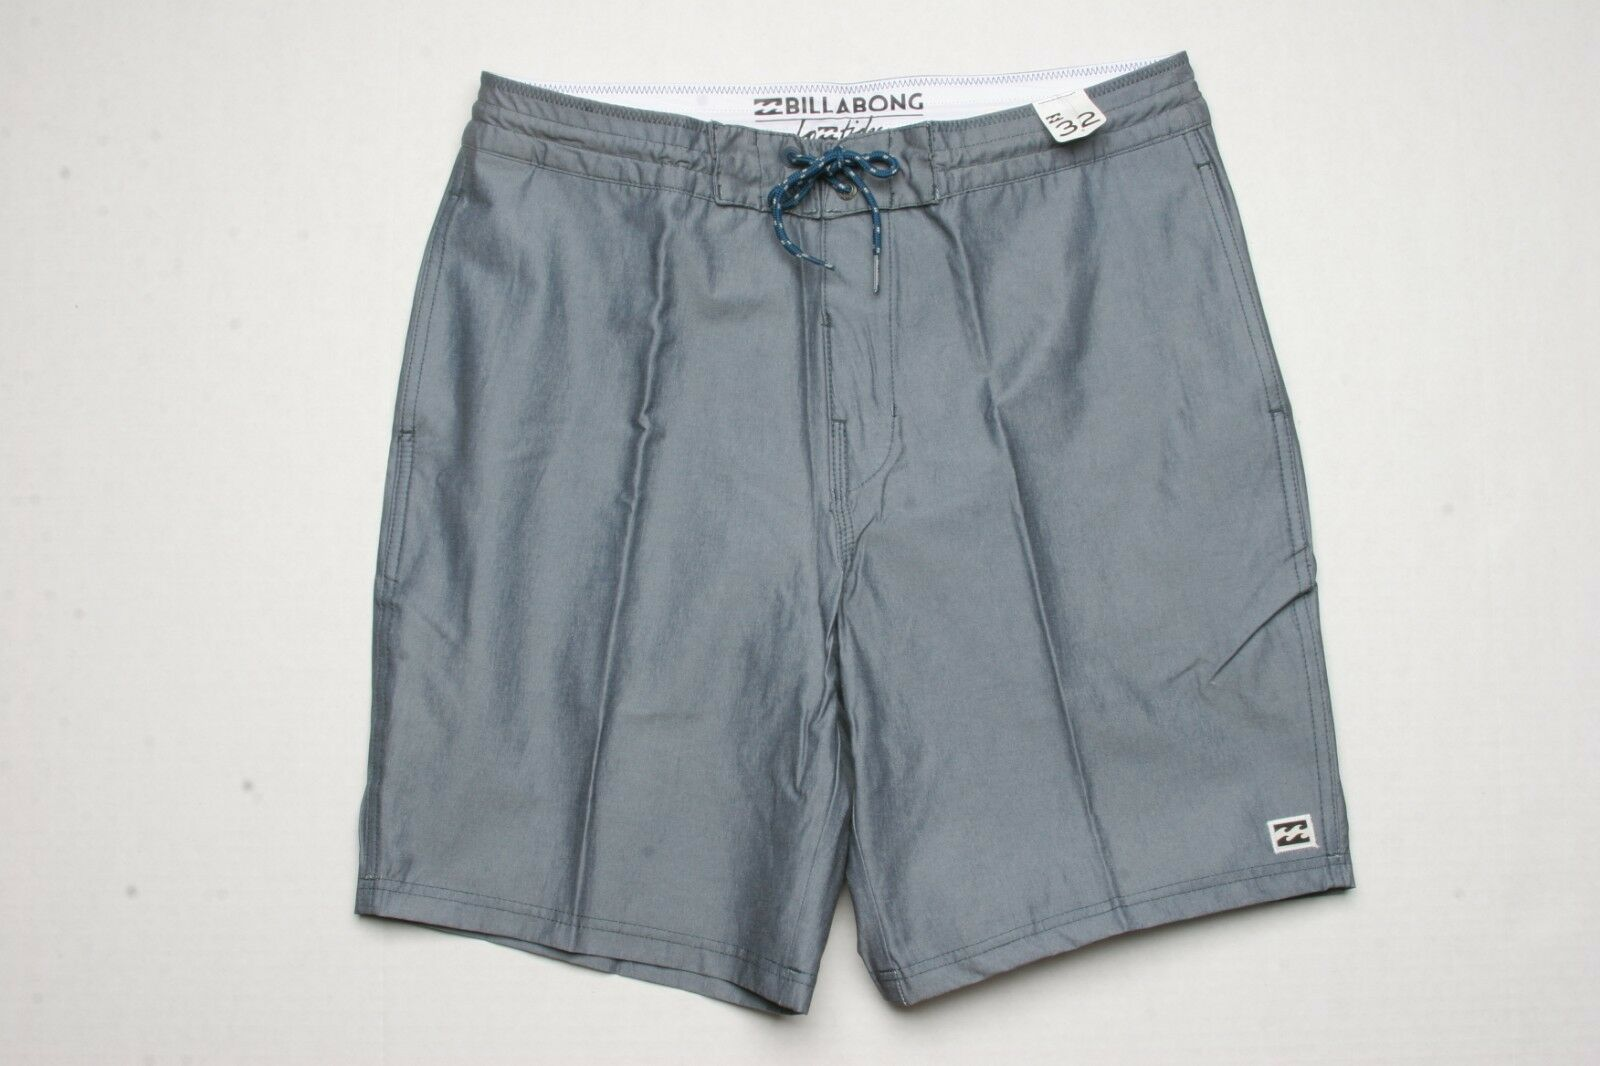 Billabong All Day LT Boardshorts (32) Dark Navy